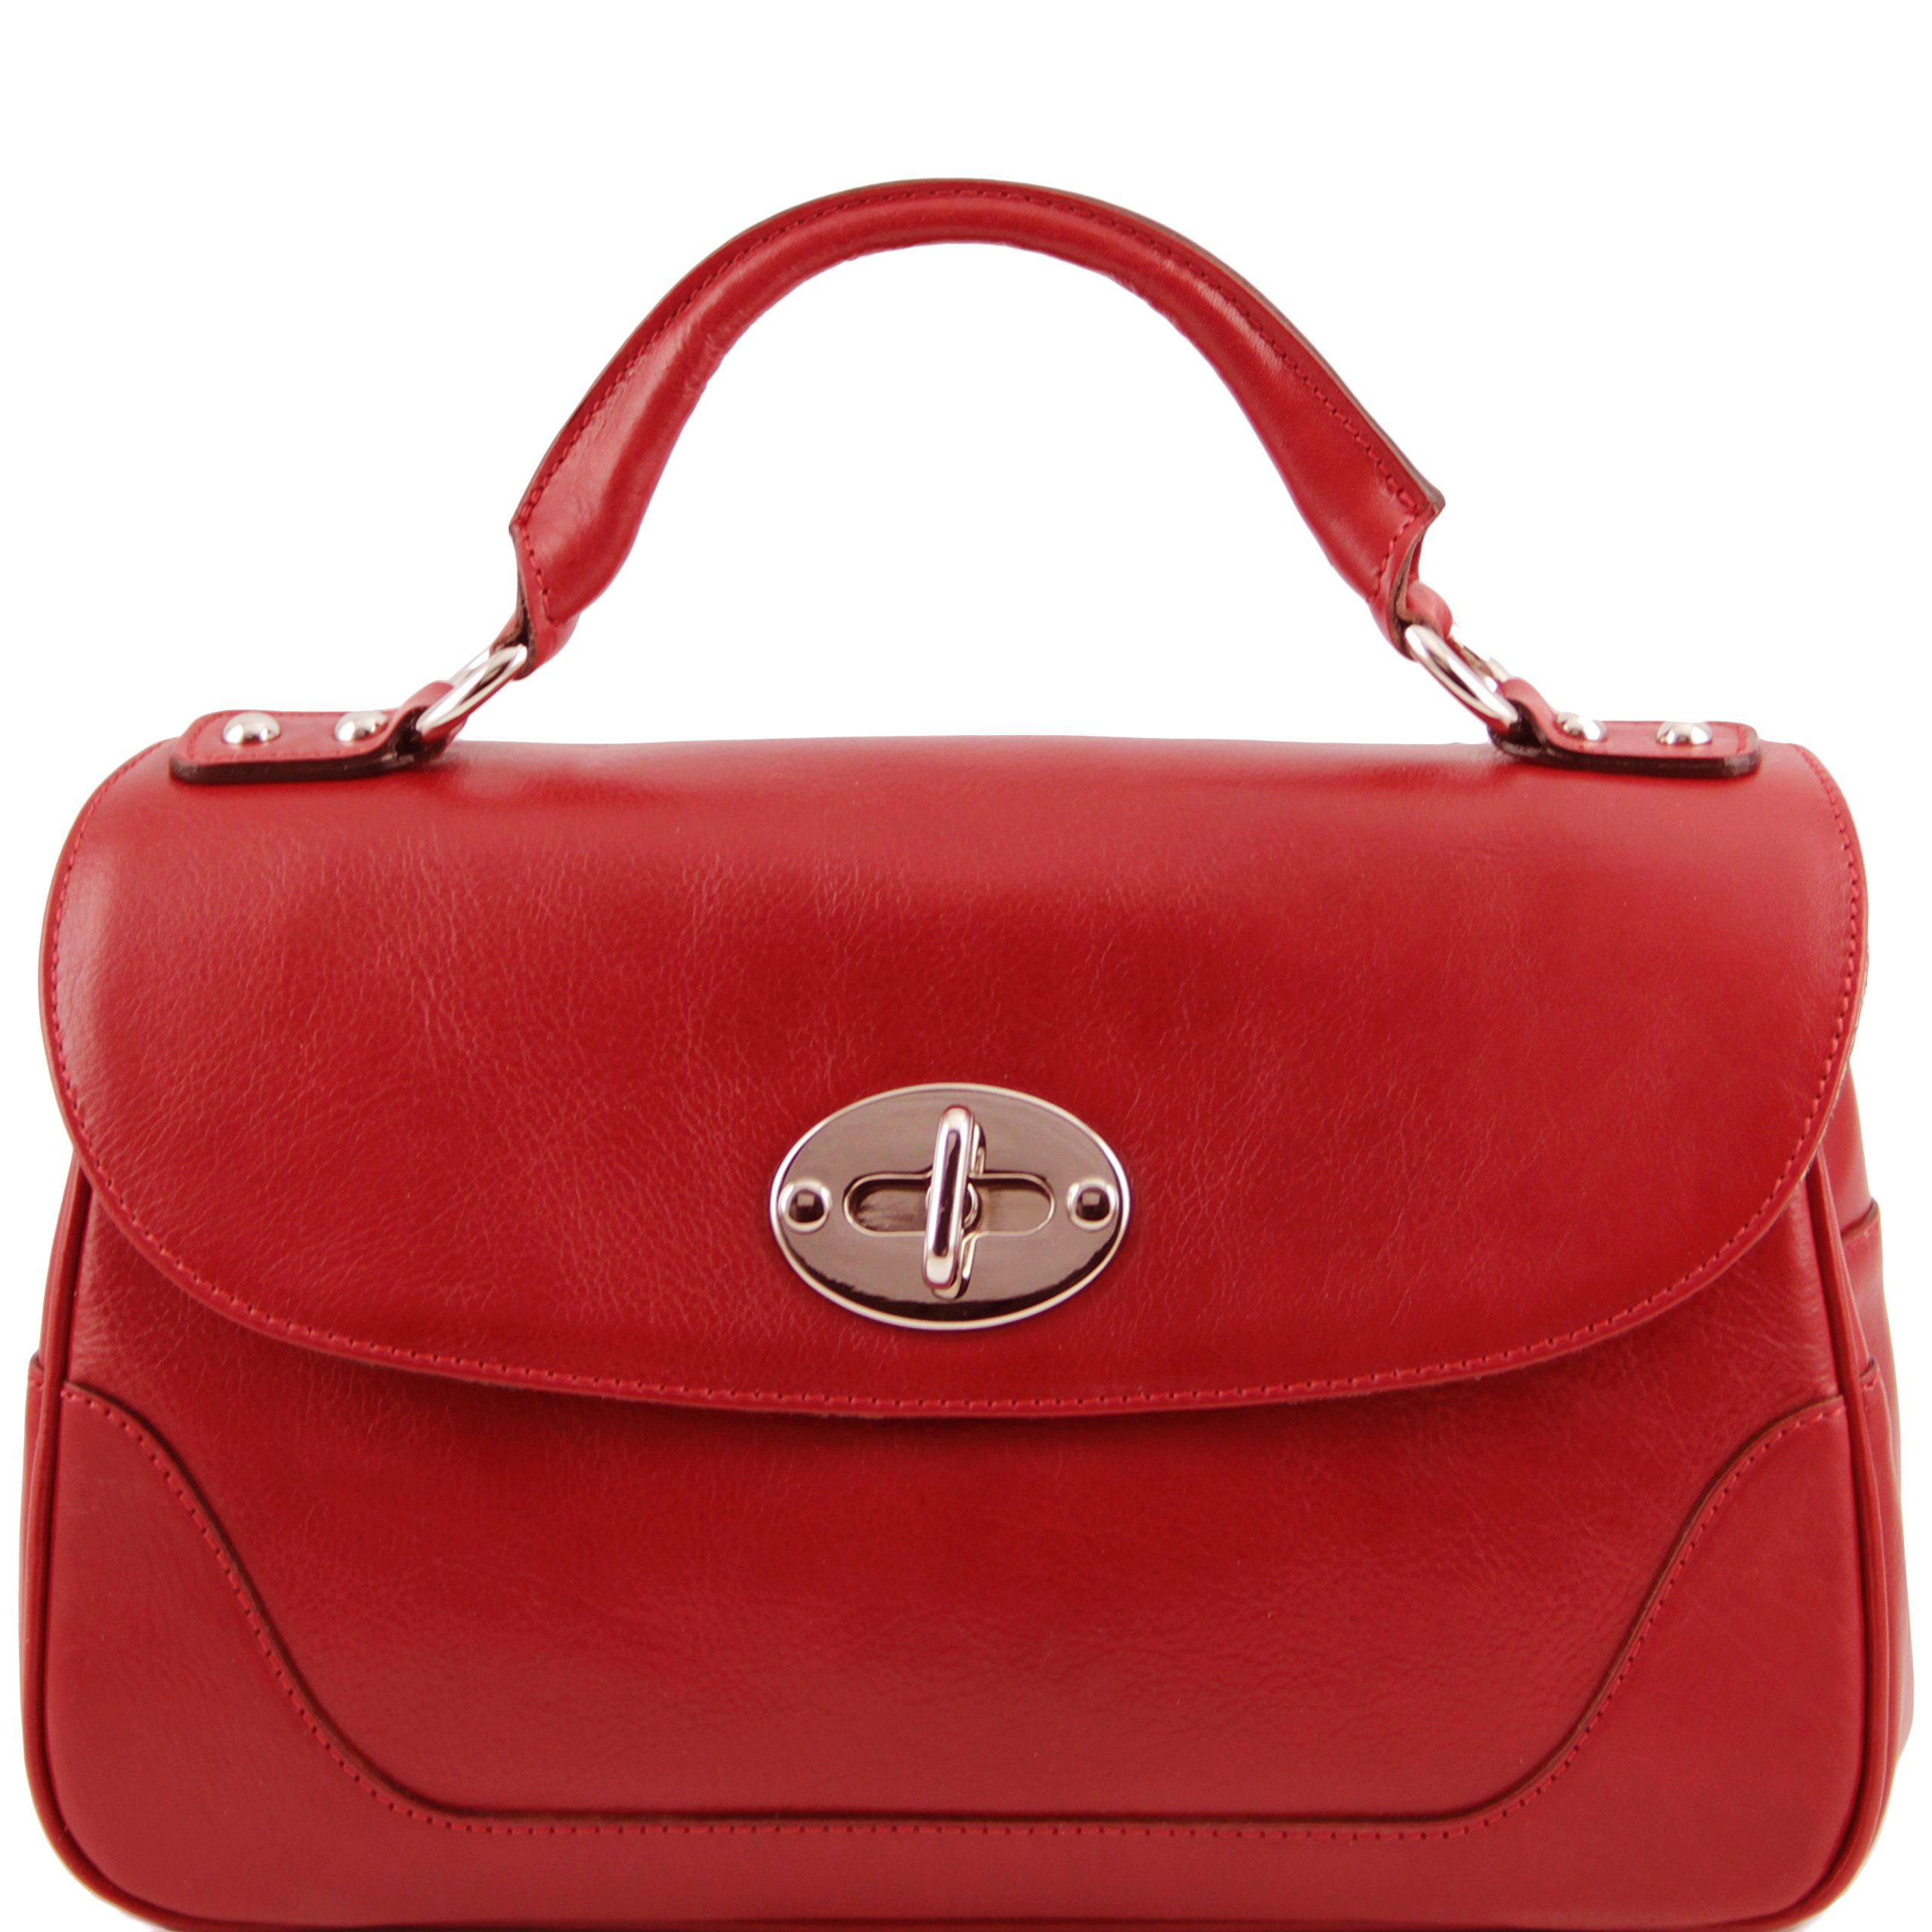 Tuscany Leather TL NeoClassic Lady leather duffel bag Red